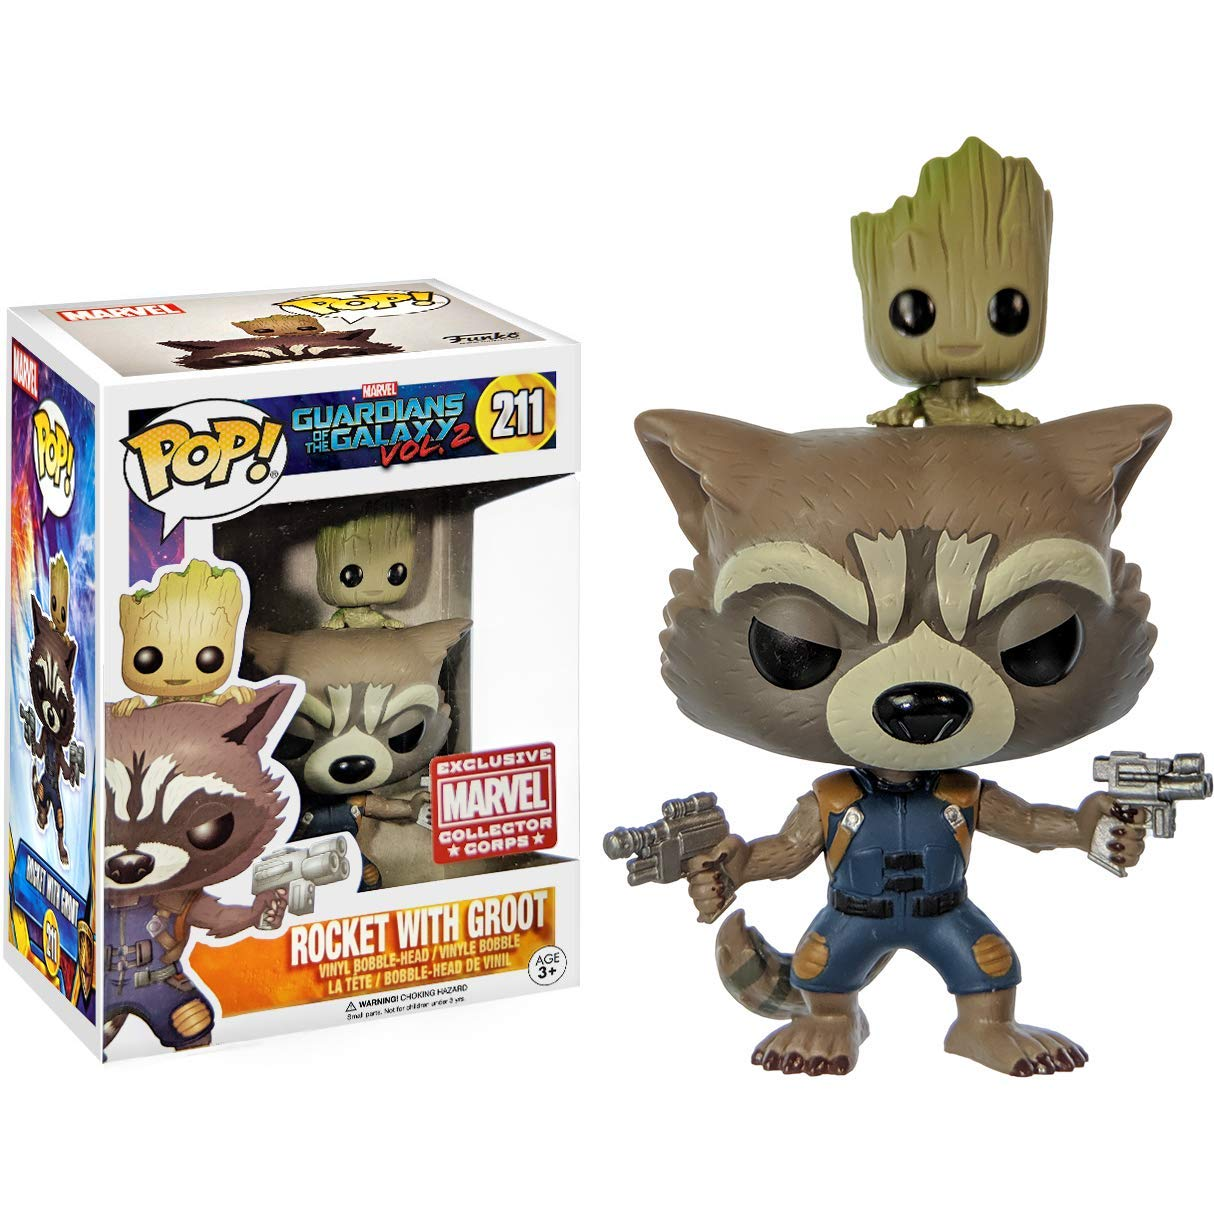 Funko Pop! Marvel Guardians of the Galaxy vol. 2 #211 Rocket with Groot Marvel Collector Corps Exclusive